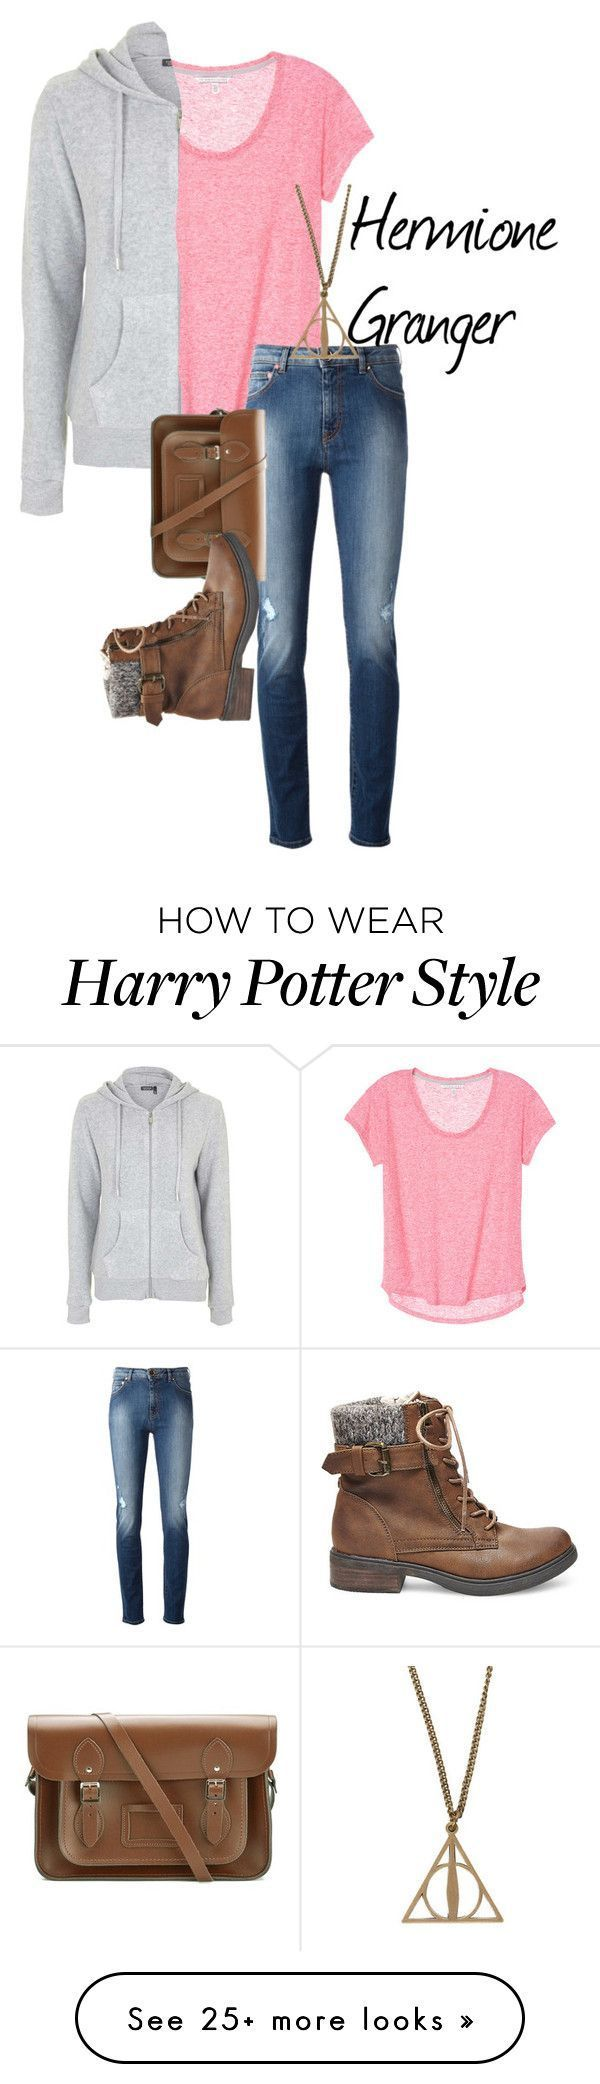 """Hermione Granger - Harry Potter"" by ava-adams123 on Polyvore featuring Topshop, Moschino, The Cambridge Satchel Company, Steve Madden and harrypotter - COSPLAY IS BAEEE!!! Tap the pin now to grab yourself some BAE Cosplay leggings and shirts! From super hero fitness leggings, super hero fitness shirts, and so much more that wil make you say YASSS!!!"